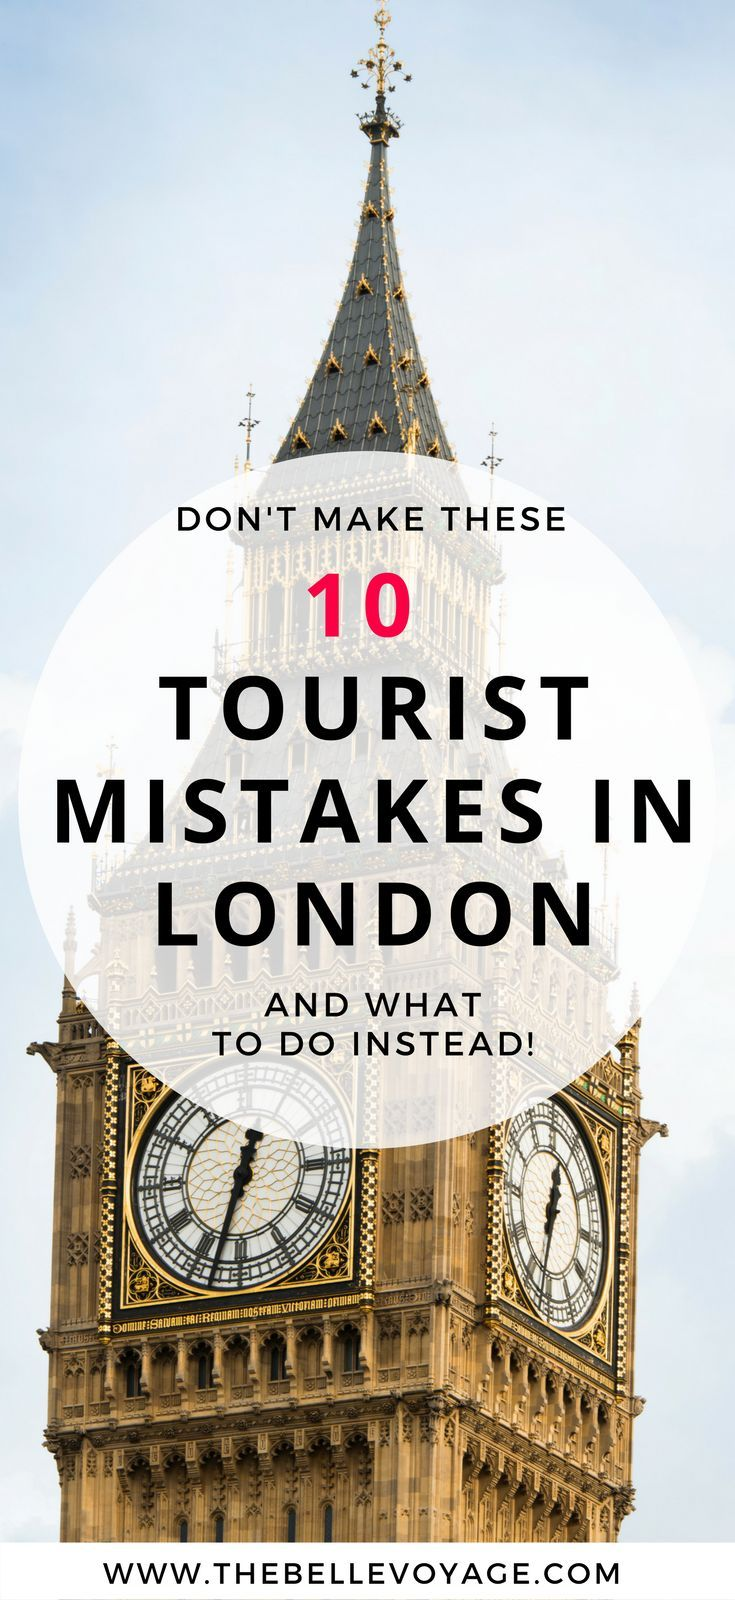 London Travel Guide: 10 Tourist Mistakes in London | London England Travel Guide | London Vacation | Things to Do in London | London Itinerary | London England Travel Tips | Places to See in London | London Inspiration #london #england #travel